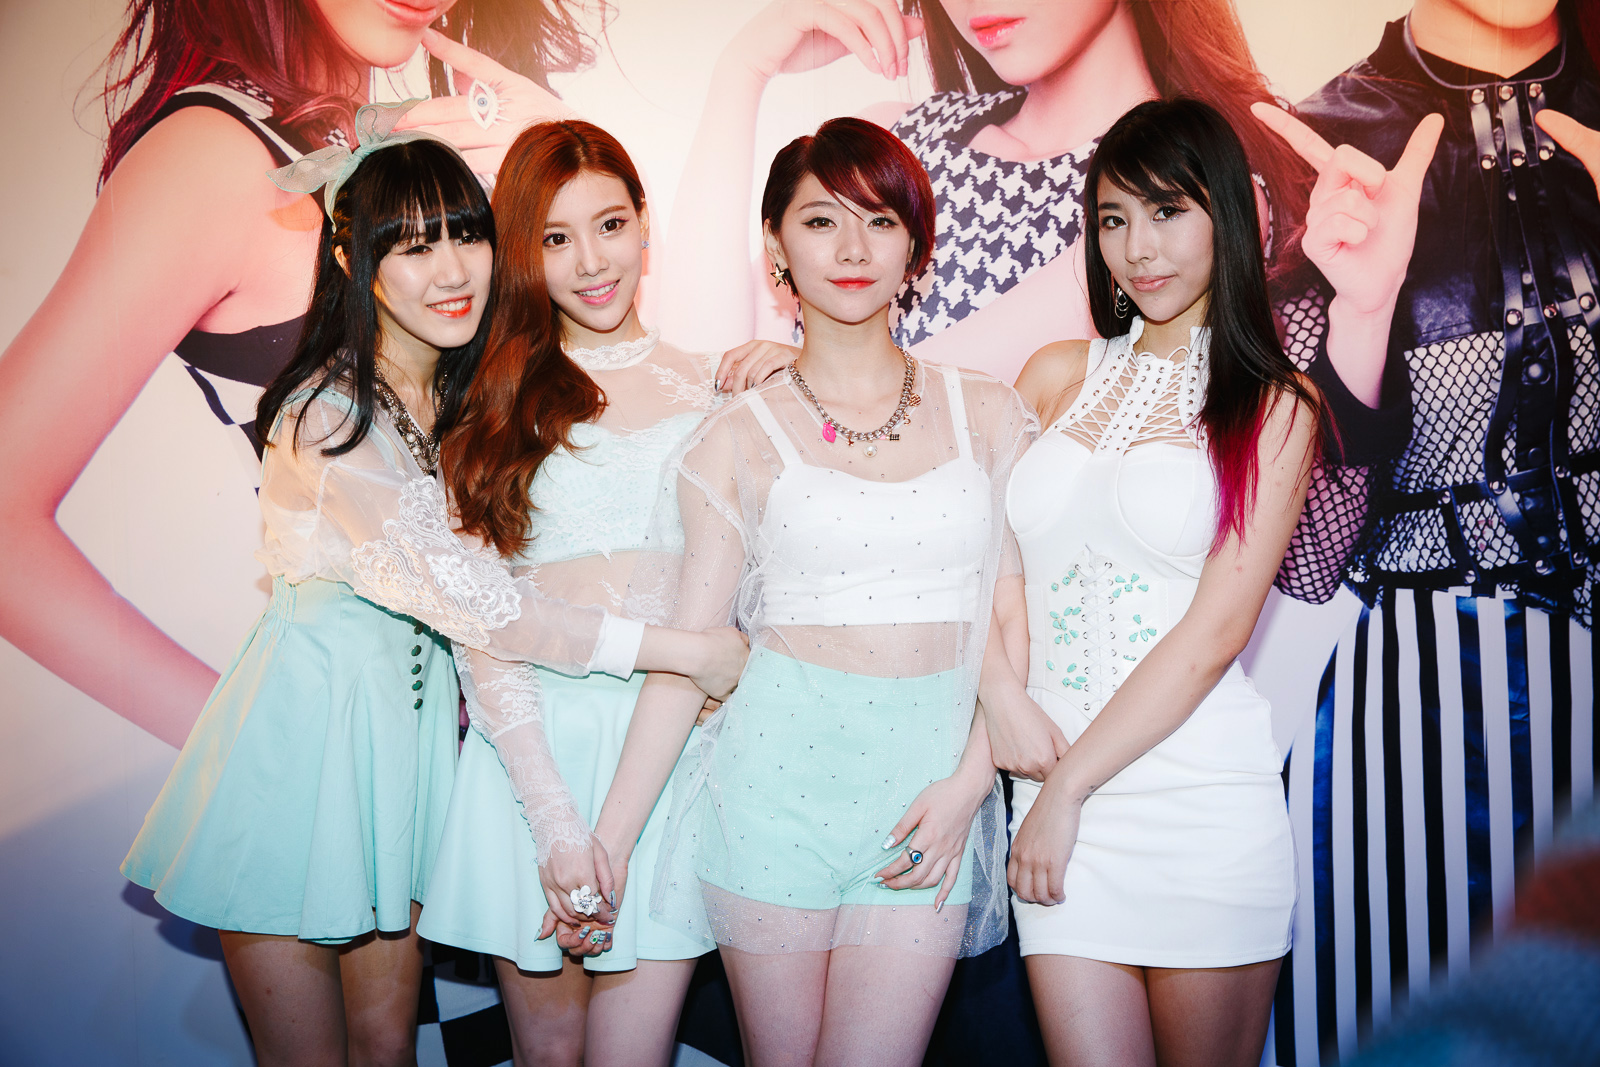 20140609_UV_Girls_00950.jpg